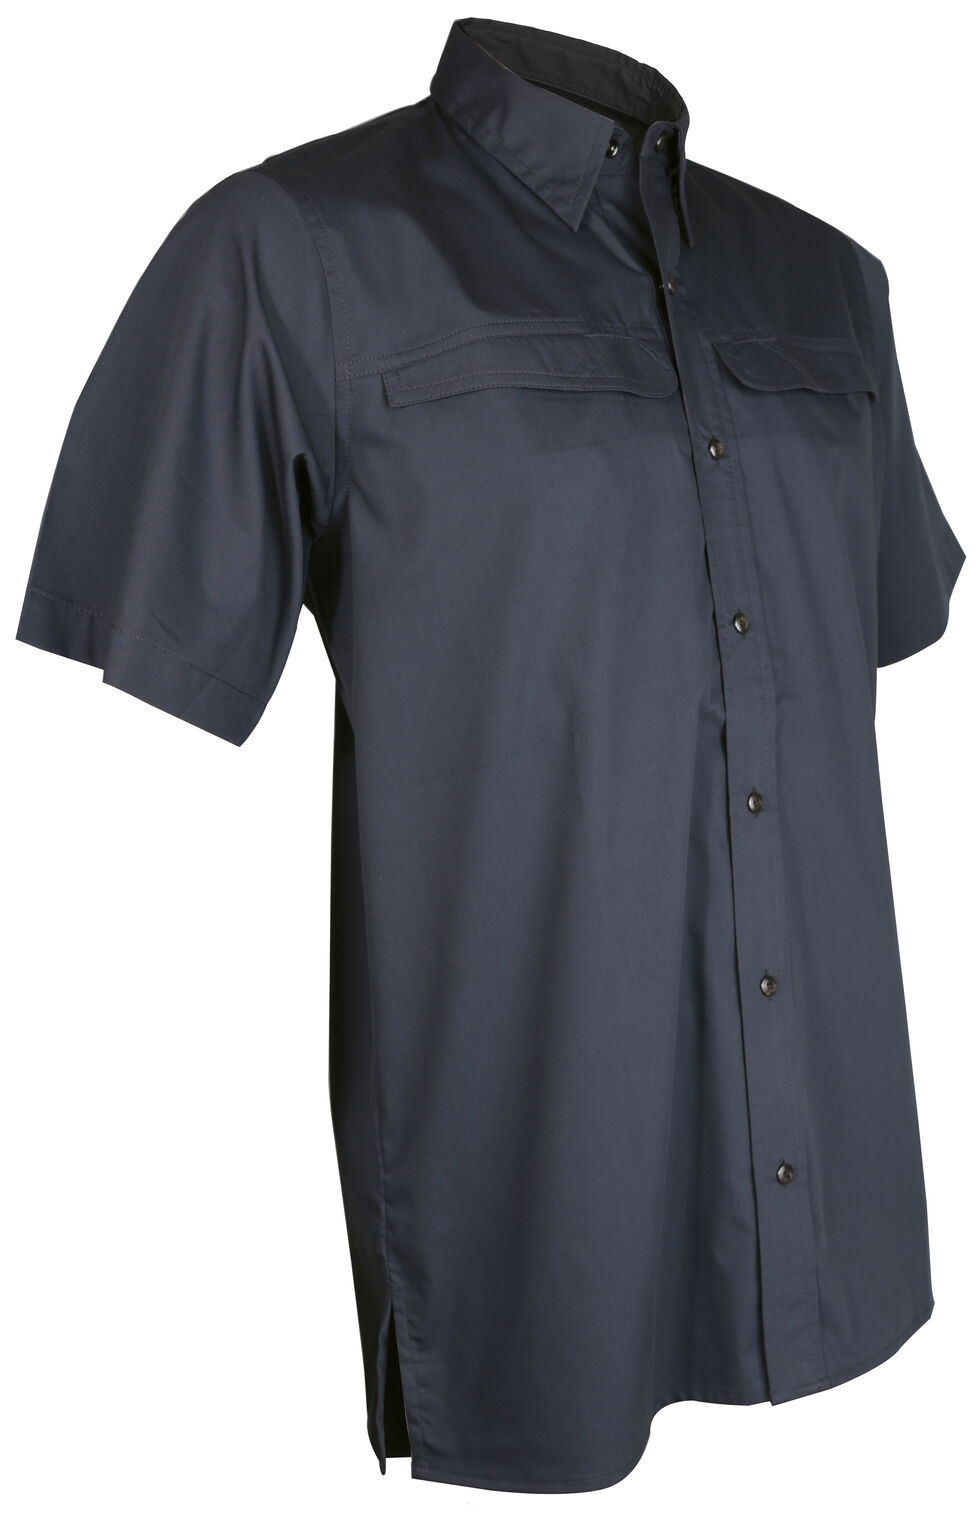 Tru-Spec Men's Grey Pinnacle Short Sleeve Shirt , Grey, hi-res